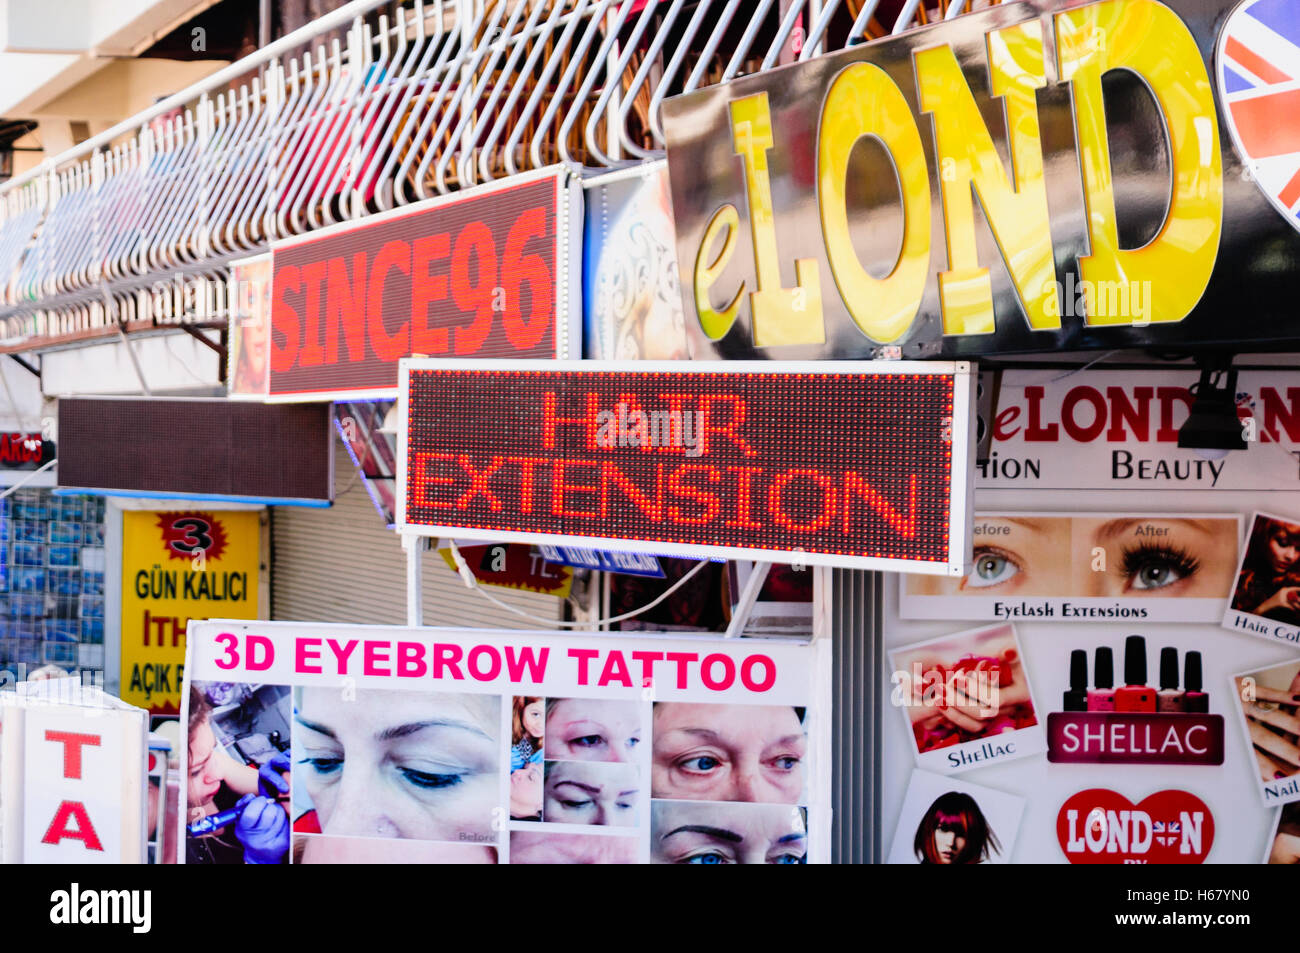 Lots of signs outside a hairdresser advertising Hair Extensions, 3D eyebrow tattoo, nail varnish etc. - Stock Image